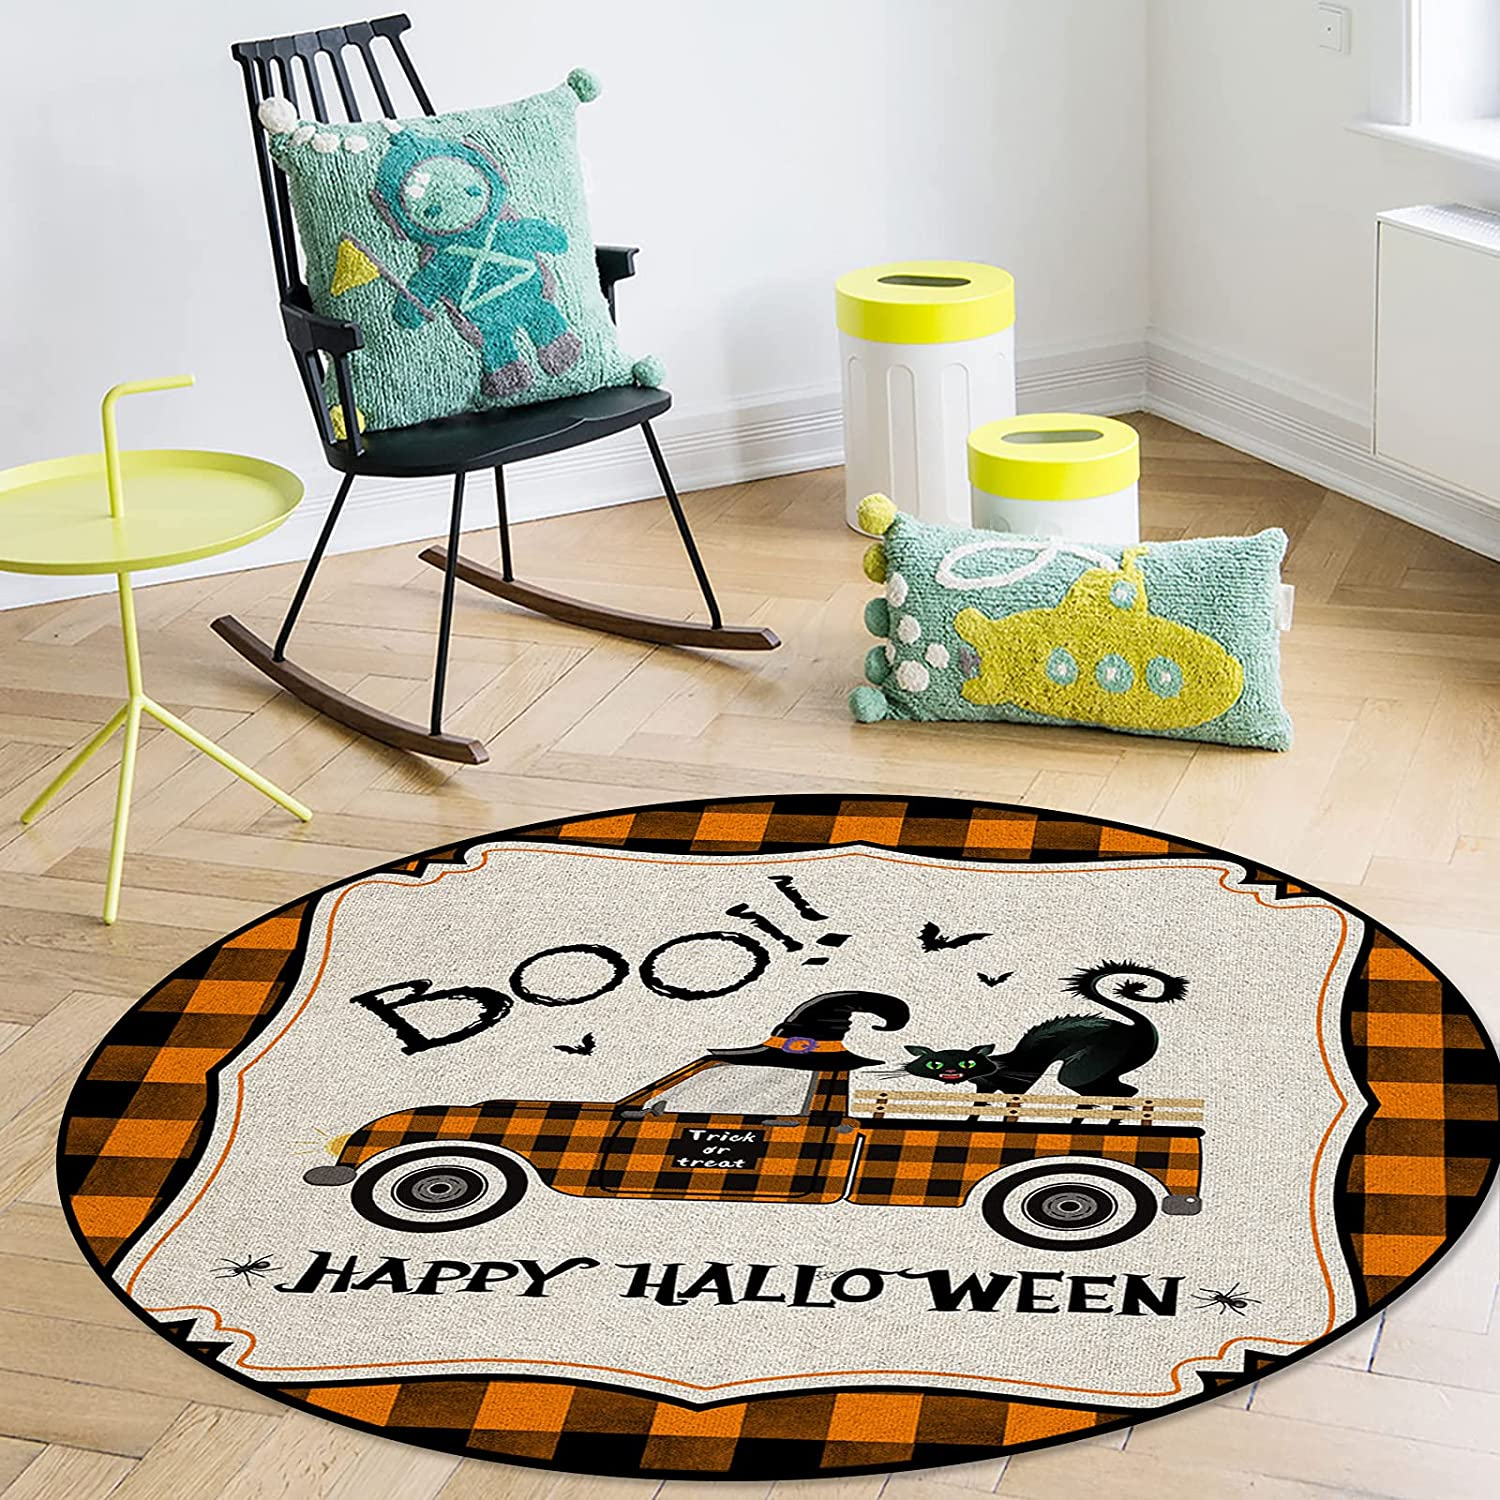 Advancey Round Area Rug Indoor Soft Rugs Truck B Sacramento Mall Witch Halloween Max 59% OFF